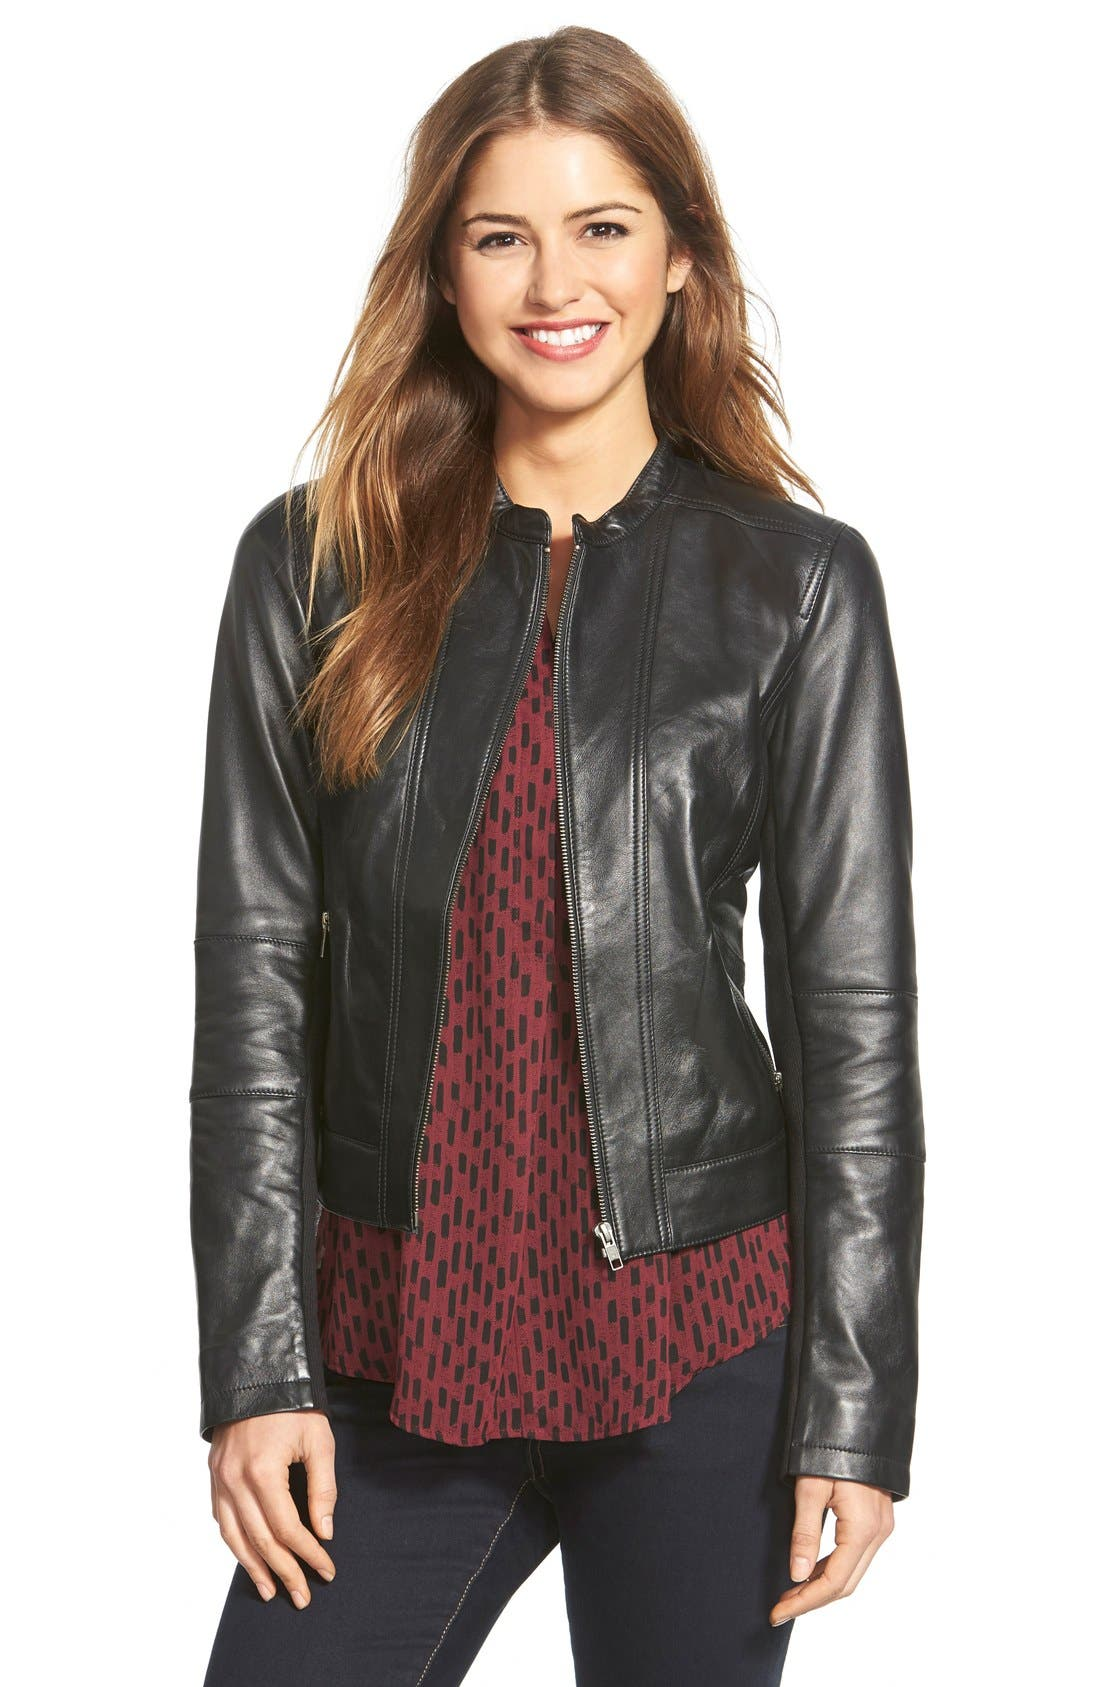 Seam Detail Leather Jacket,                         Main,                         color, 001